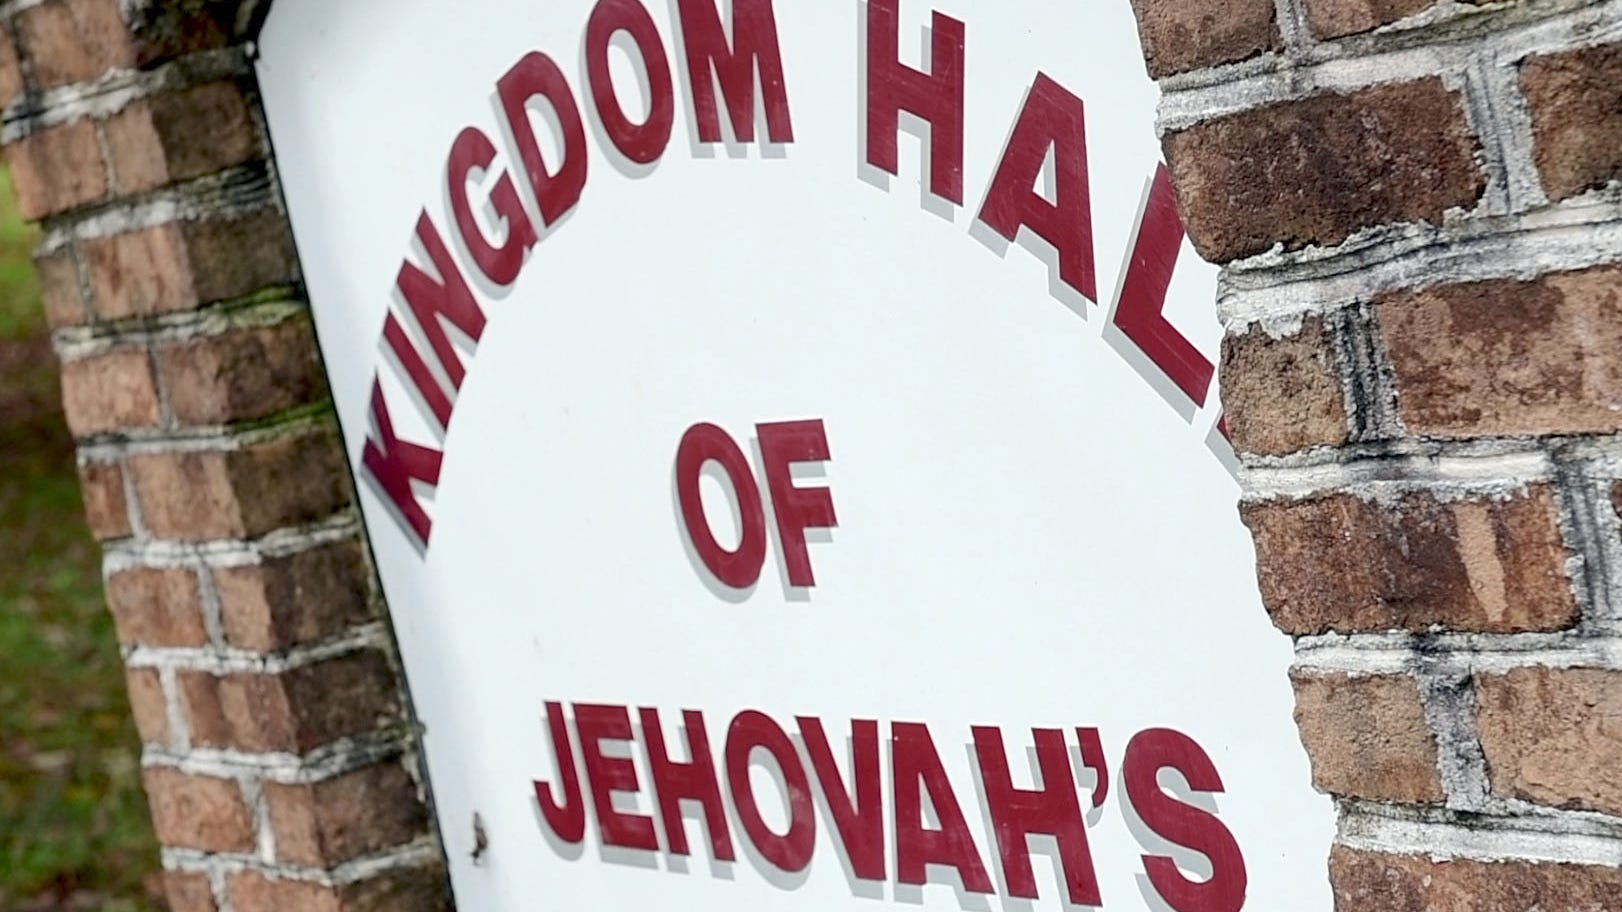 'Punished' for being sexually abused in York County: Jehovah's Witnesses' culture of cover-up